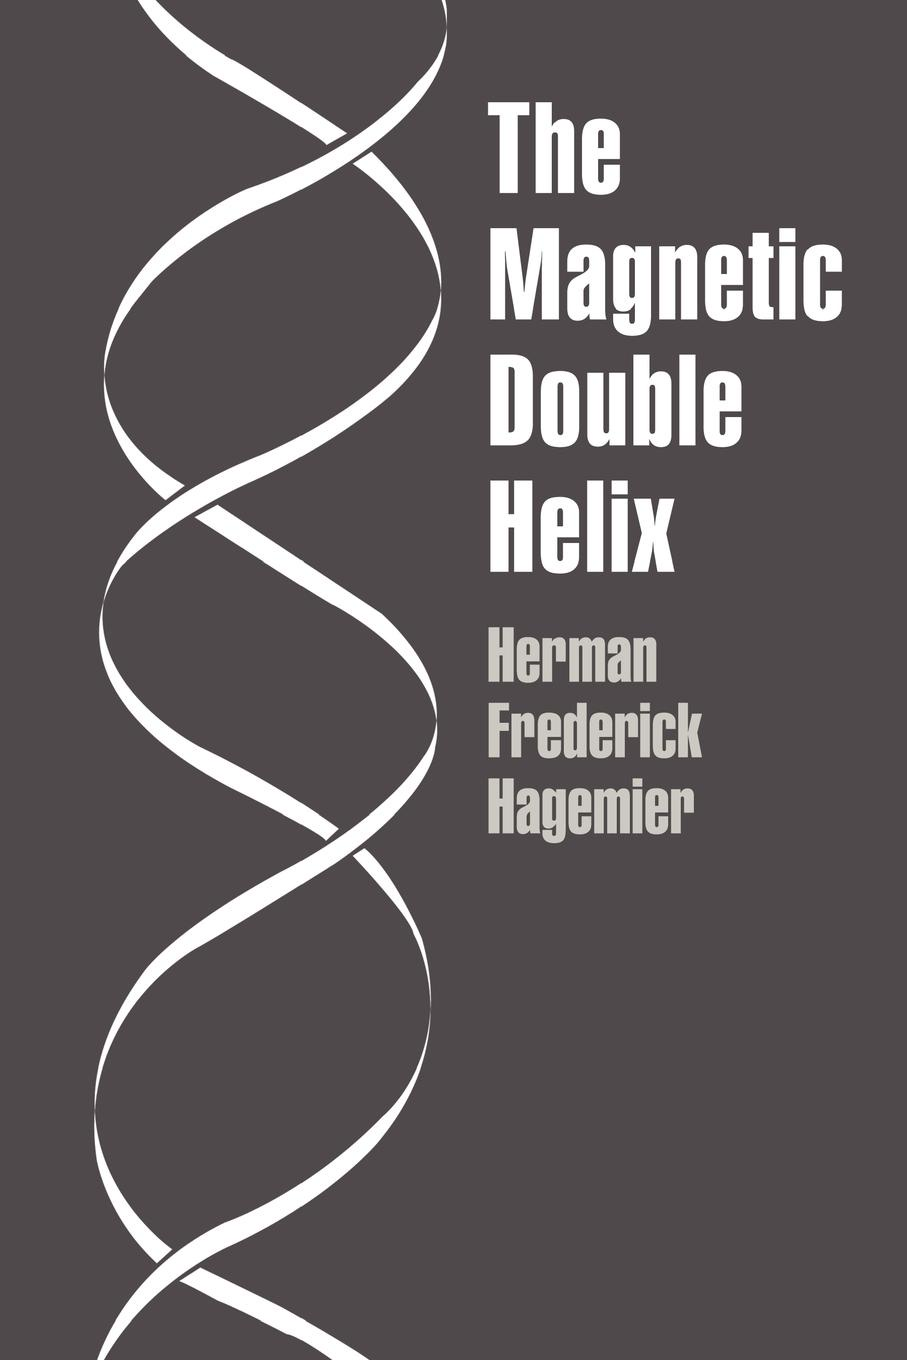 Herman Frederick Hagemier The Magnetic Double Helix, III все цены